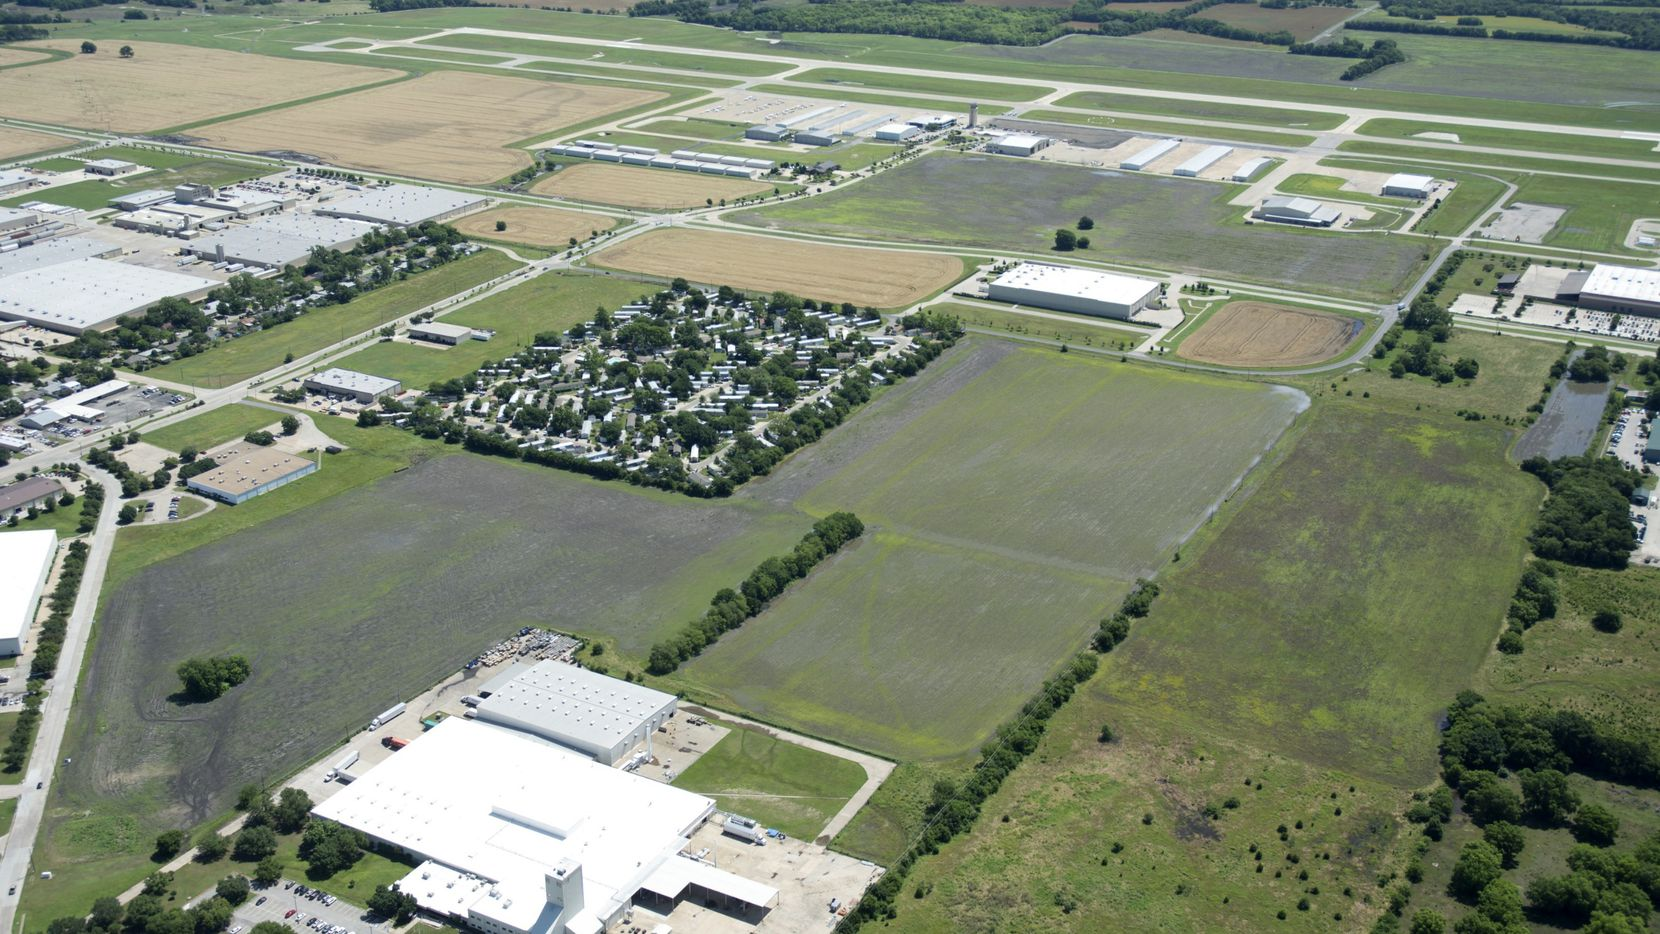 Houston-based Sentinel Capital purchased 37 acres for an industrial park at McKinney National Airport.